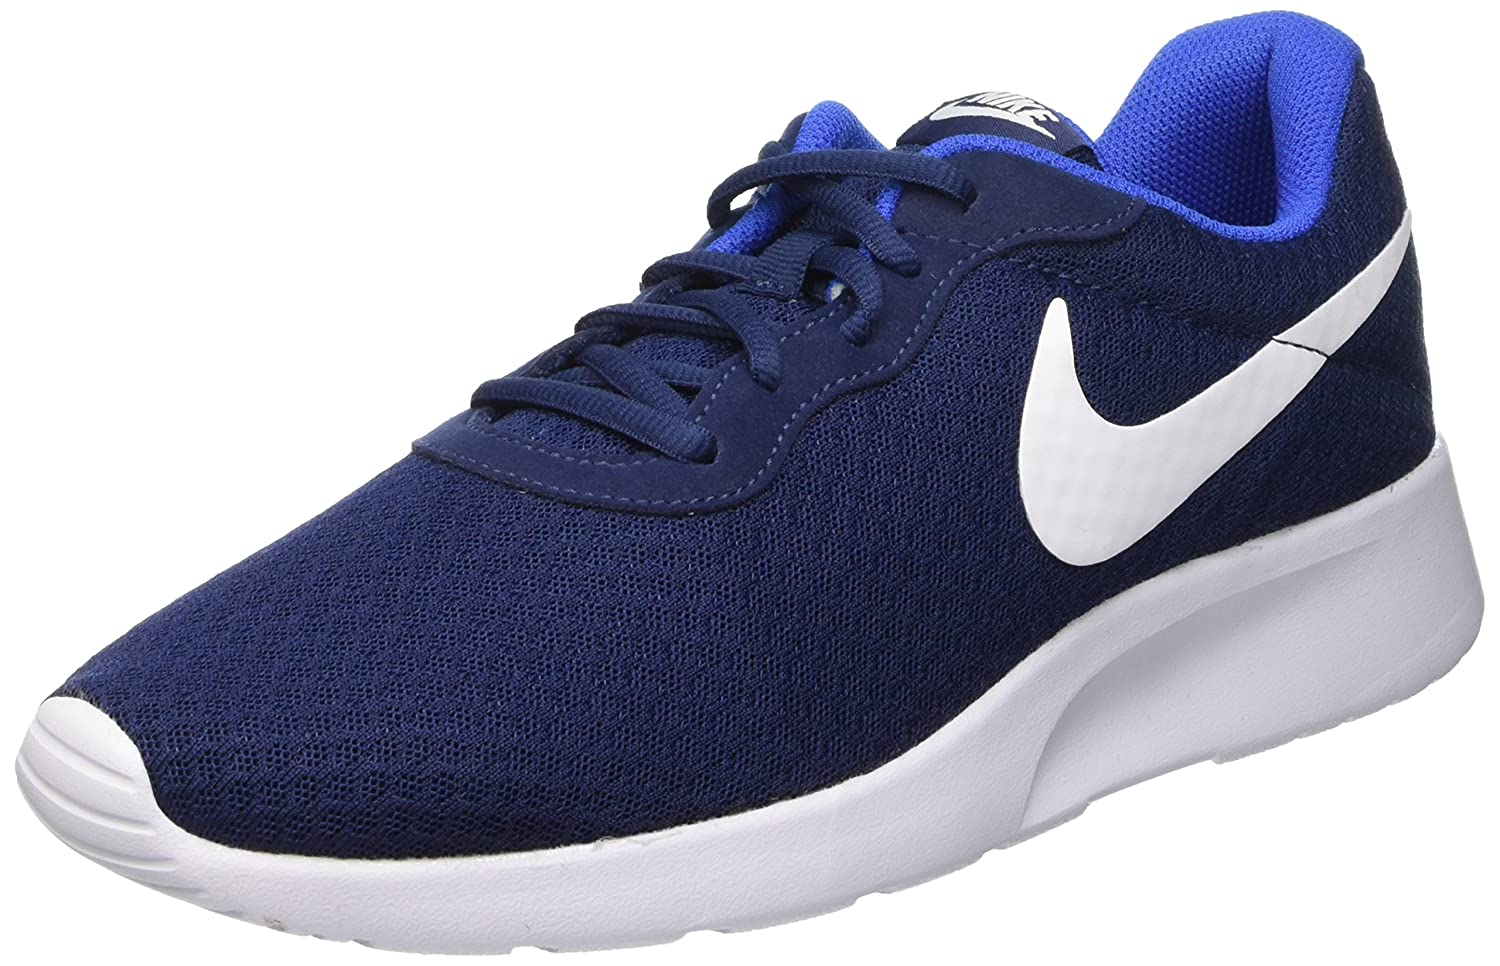 Nike Men's Midnight Navy White Game Royal Mesh Running Shoes - 7: Buy  Online at Low Prices in India - Amazon.in